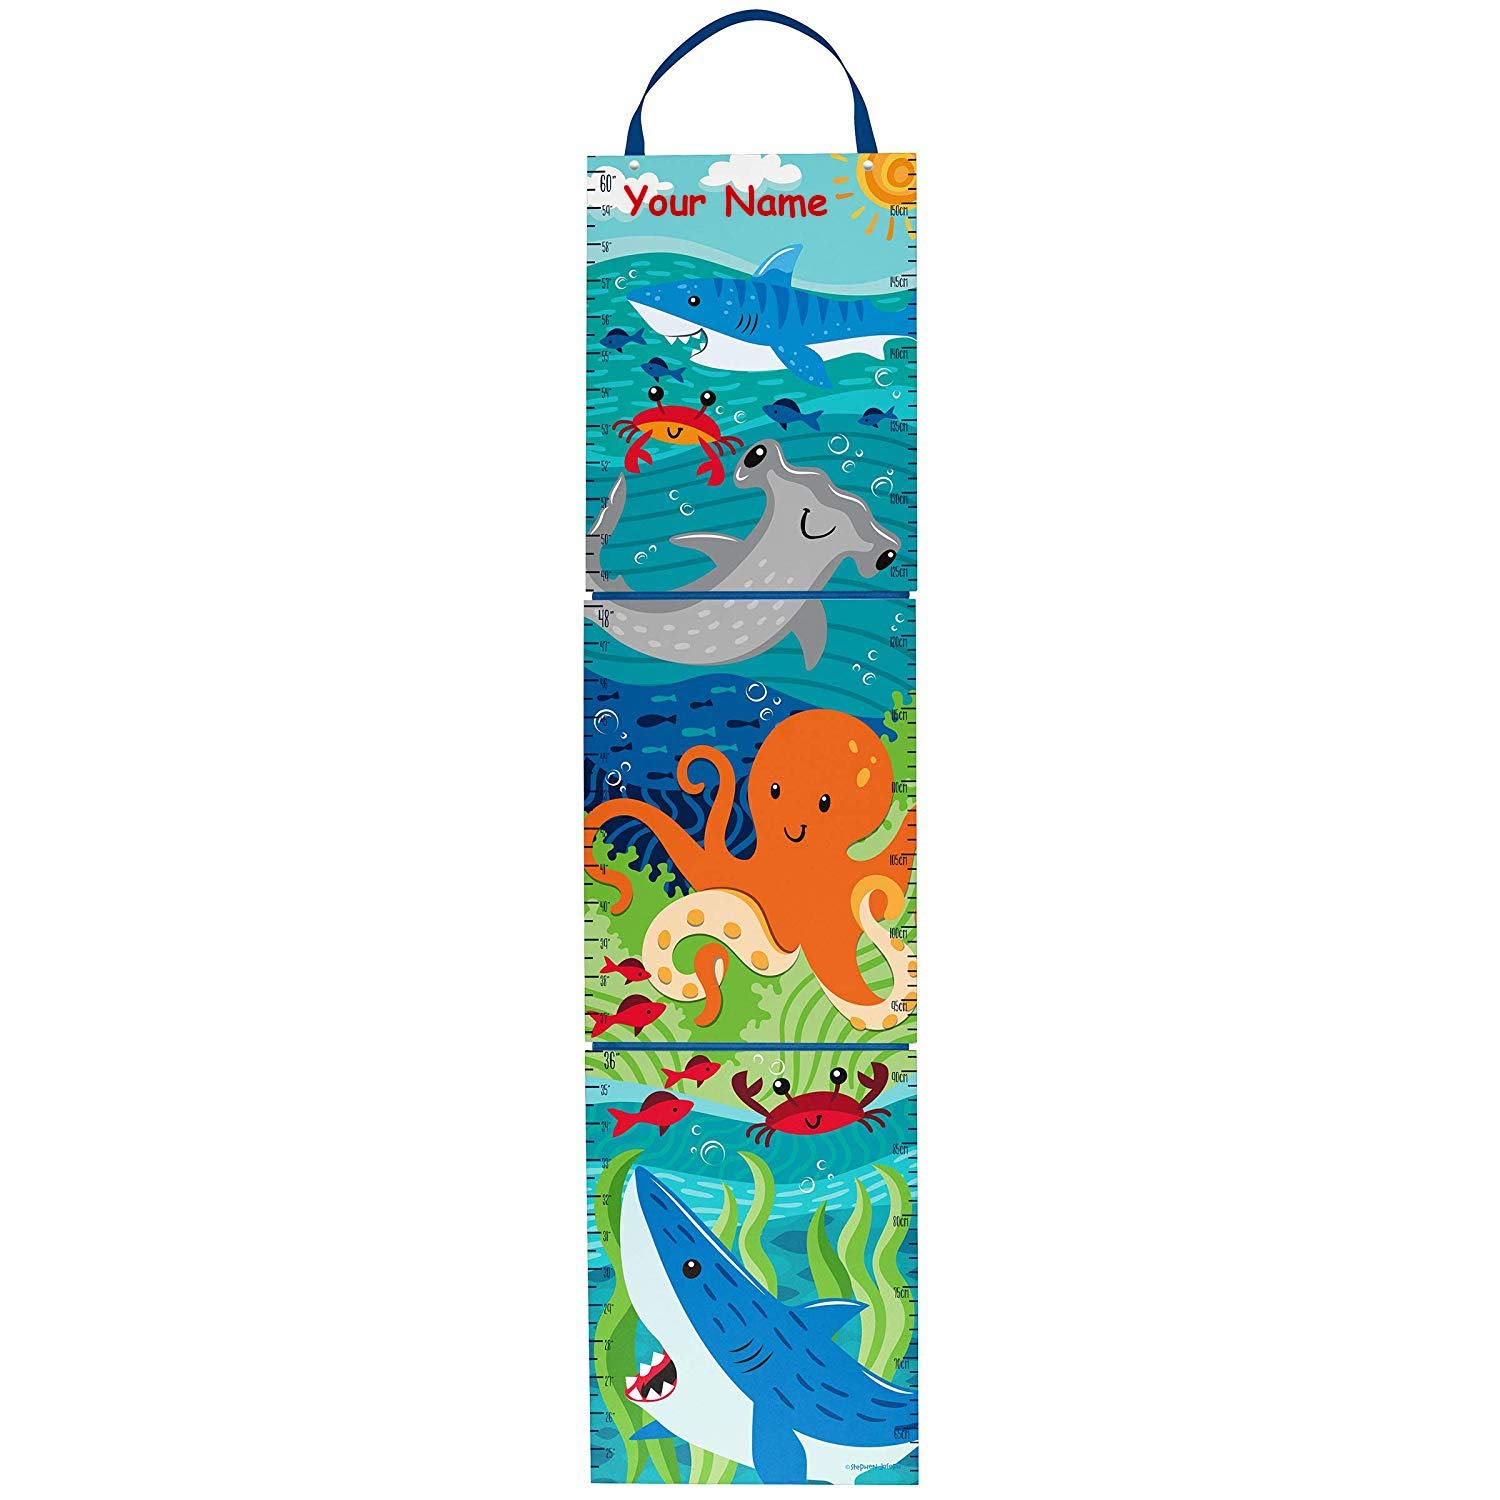 Personalized Underwater Sea Creature Shark Keepsake Milestone Measuring Growth Chart for Boys and Girls with Custom Name - 5 Feet